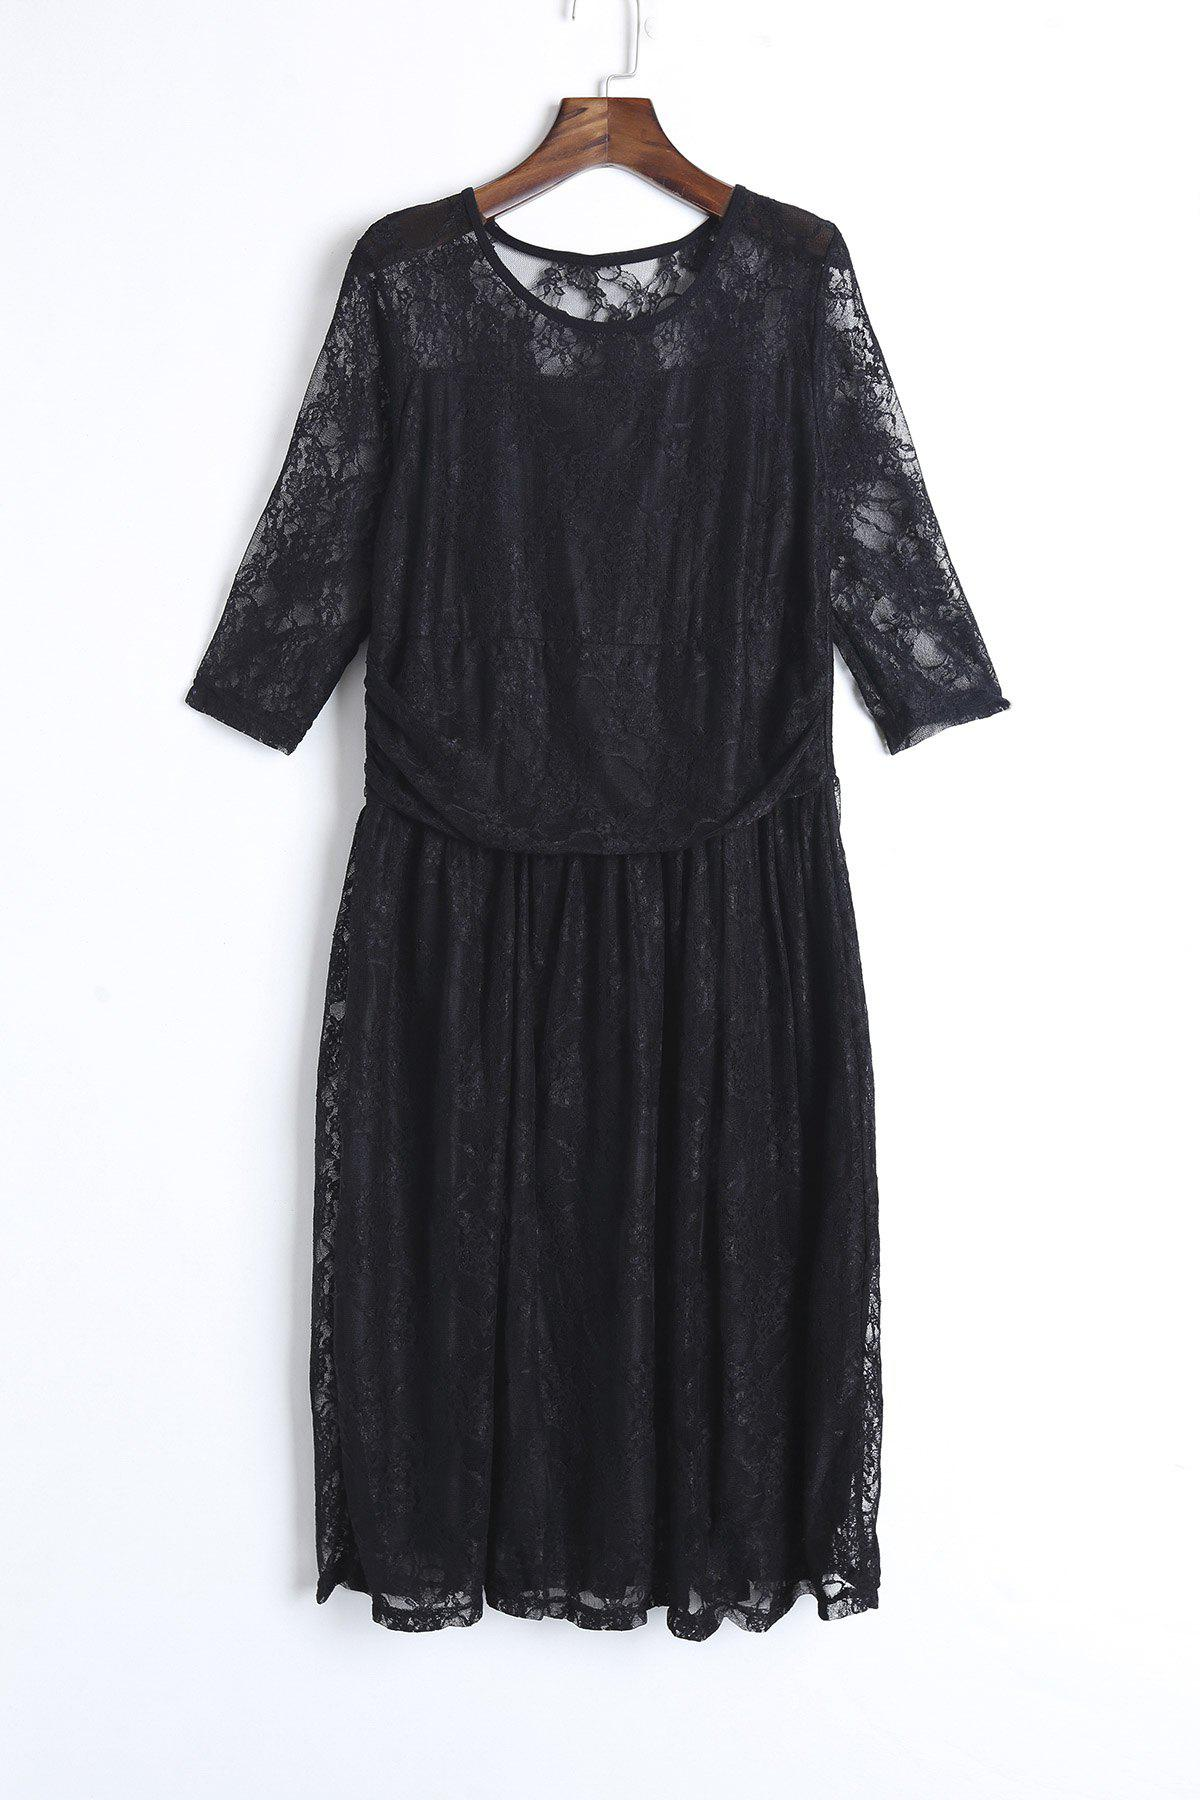 Elegant Solid Color Jewel Neck Half Sleeve Pleated Lace Dress For Women - BLACK 2XL